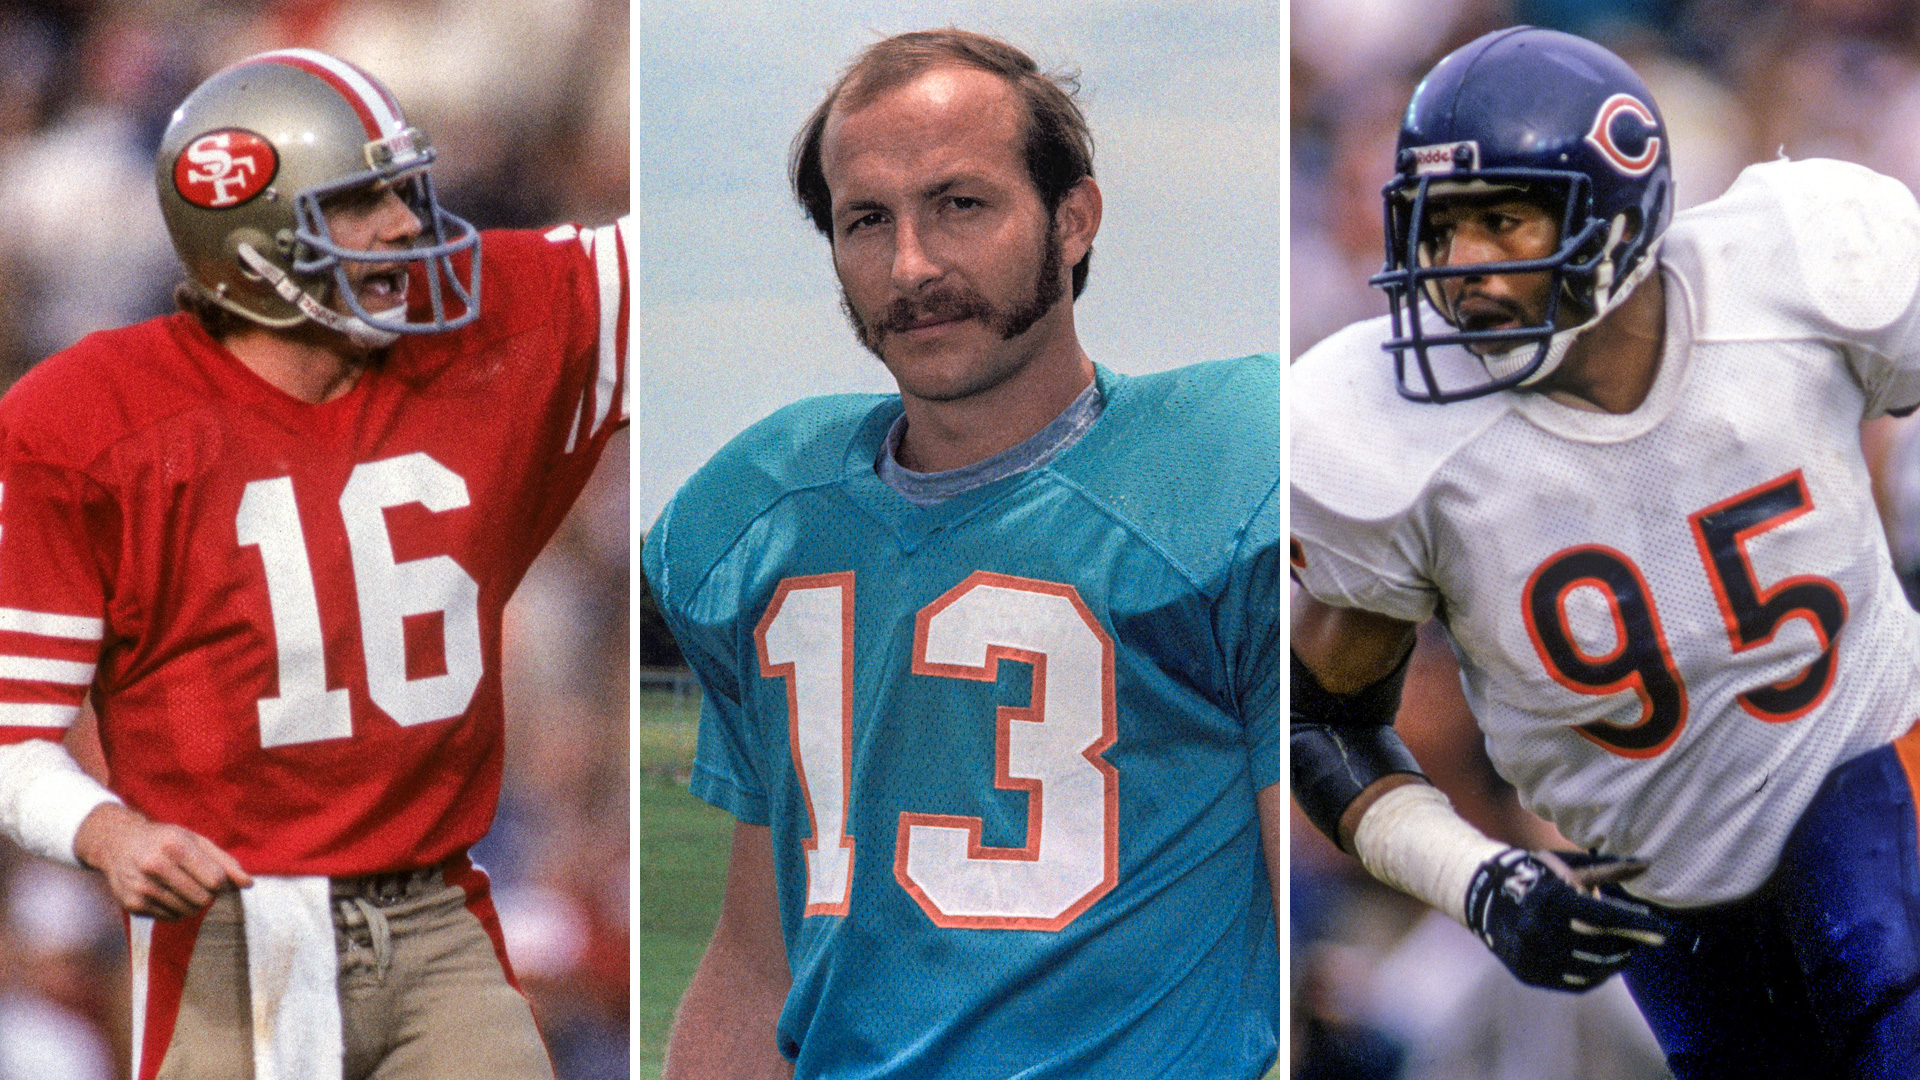 the best super bowlwinning teams ranked 152 15 minute